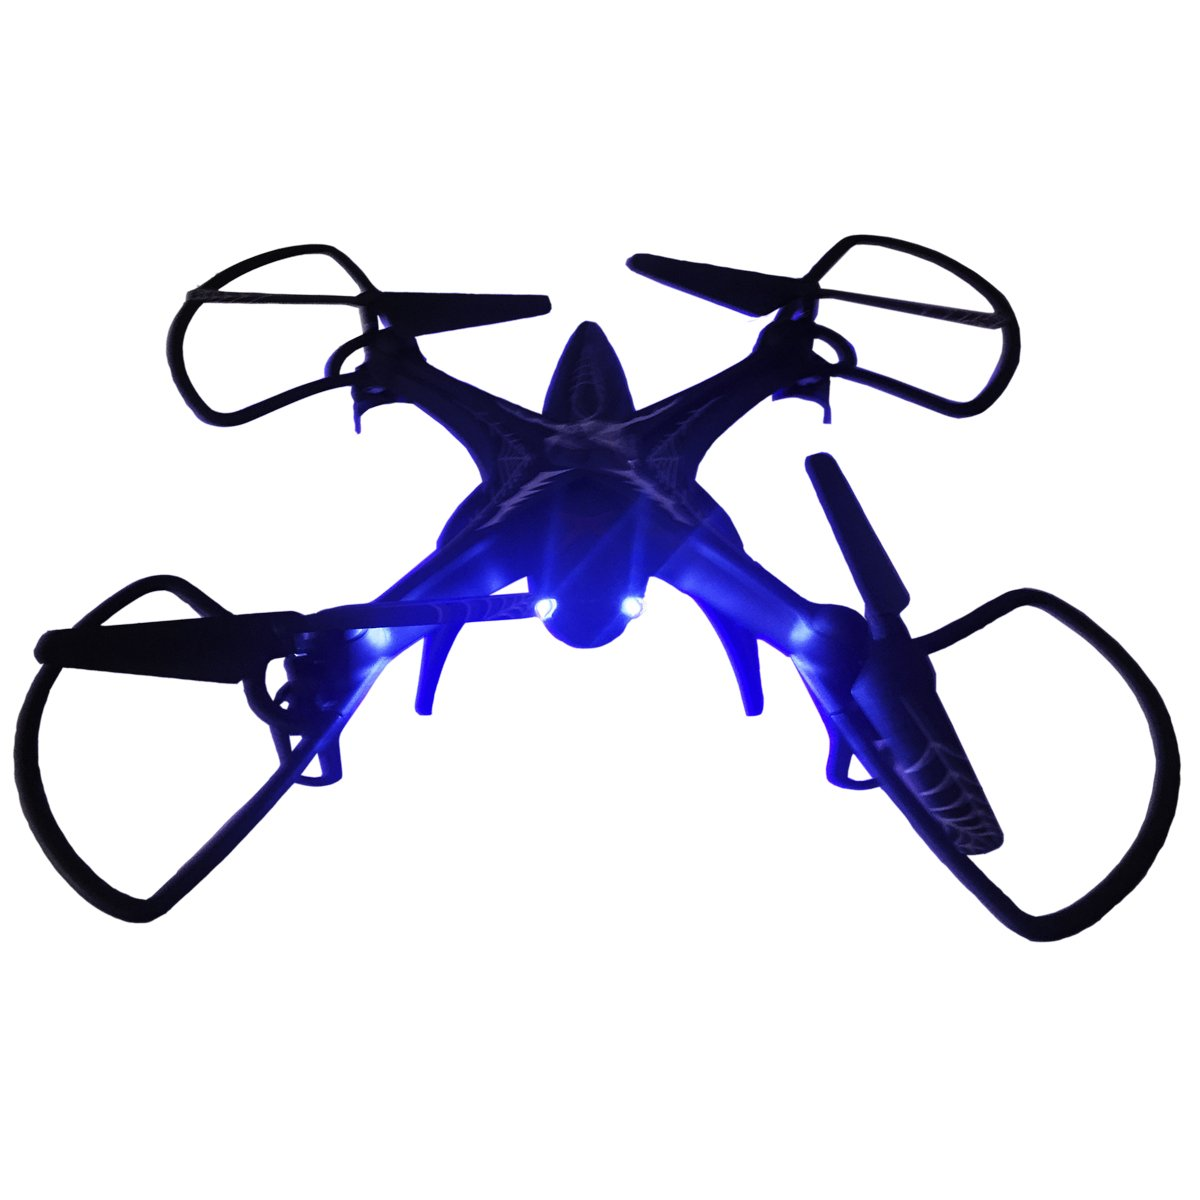 Dron Anfibio 4-Axis 2.4Ghz 4Canales 8Min